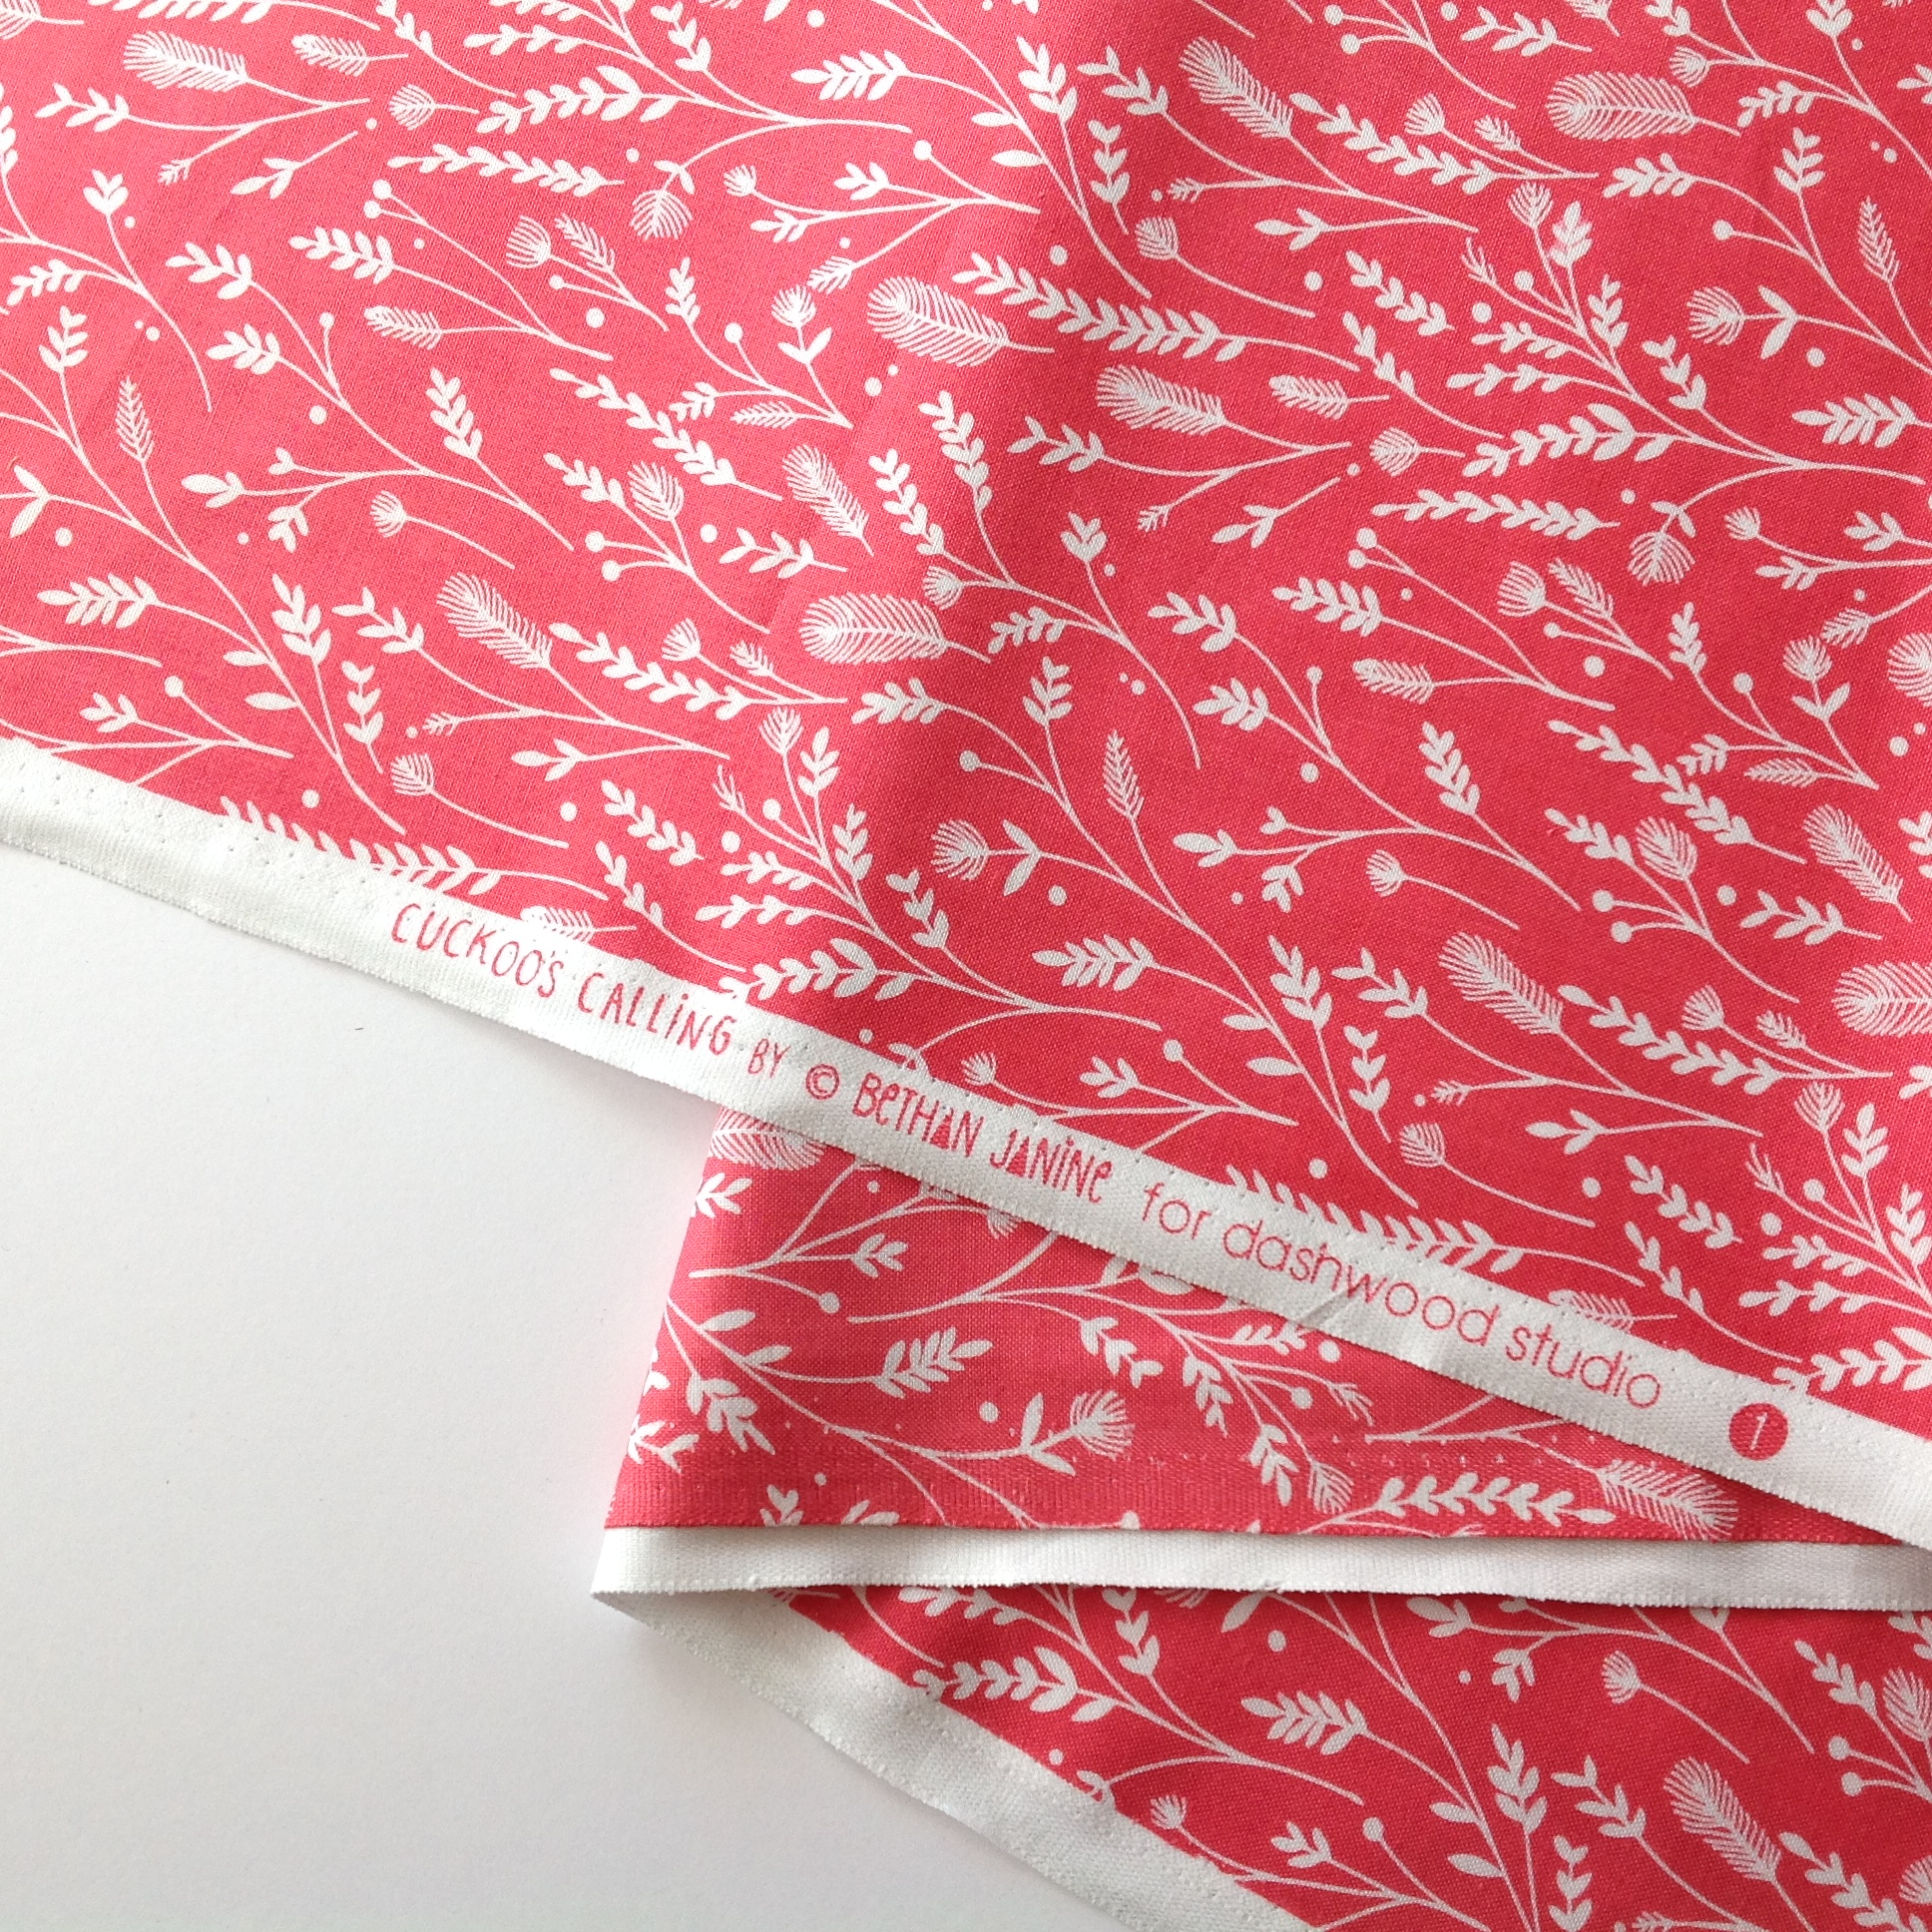 Pink Leaves from the Cuckoo's Calling collection by Dashwood Studio